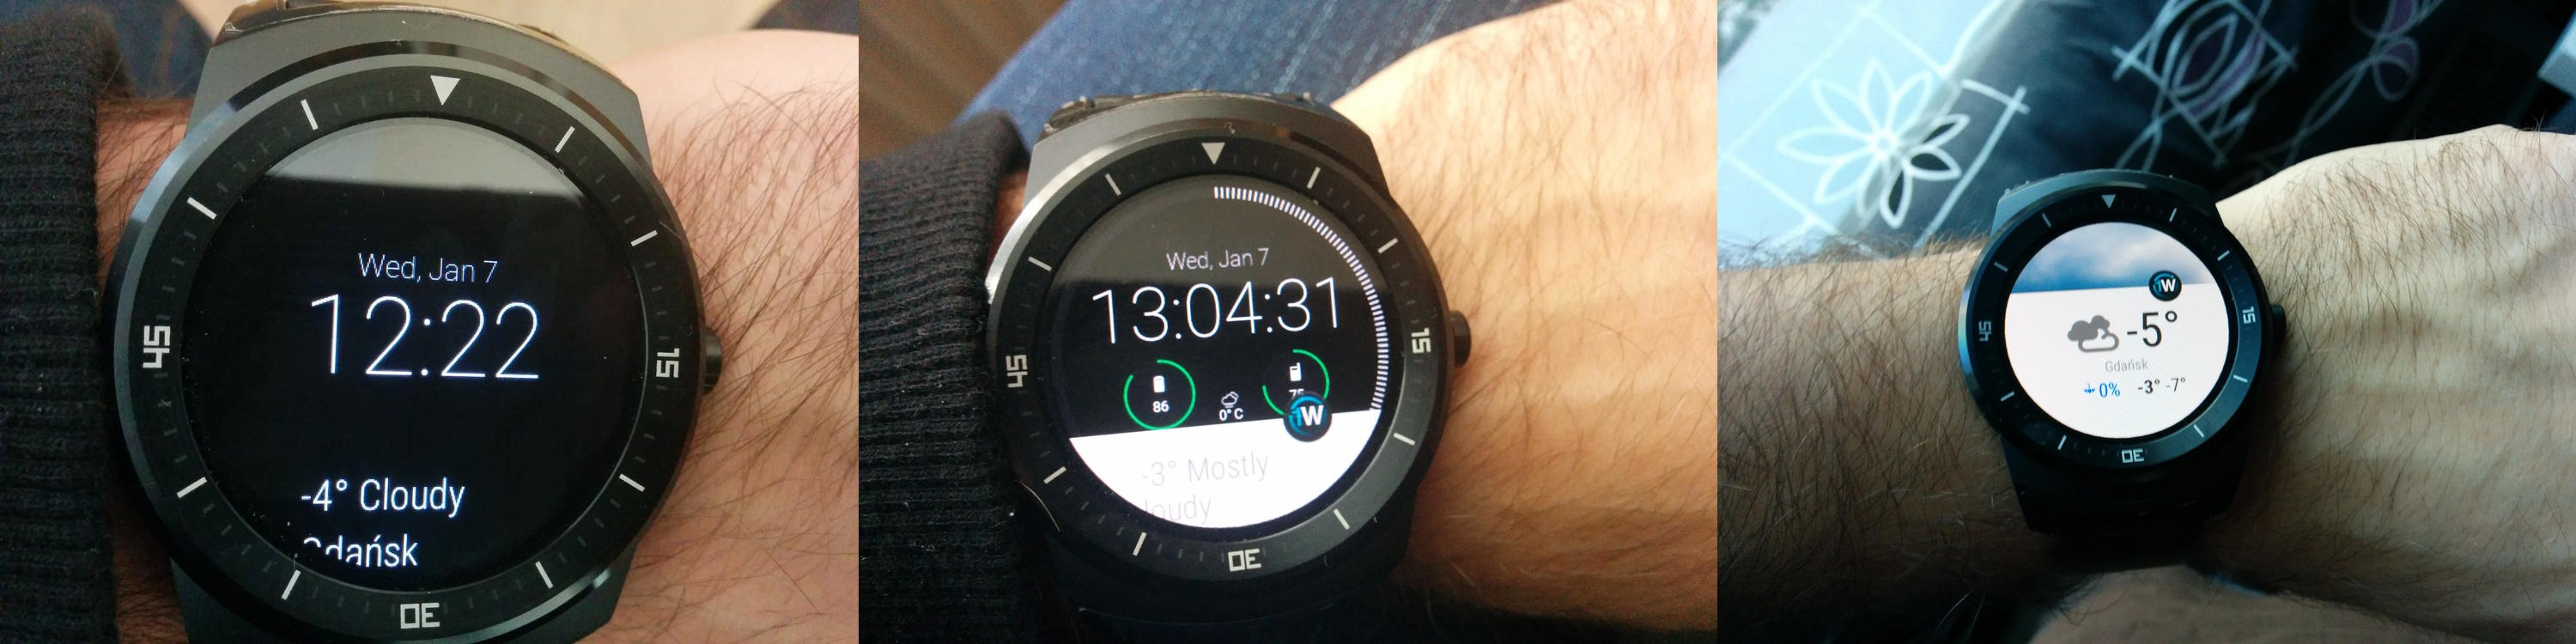 lg_g_watch_r_1weather